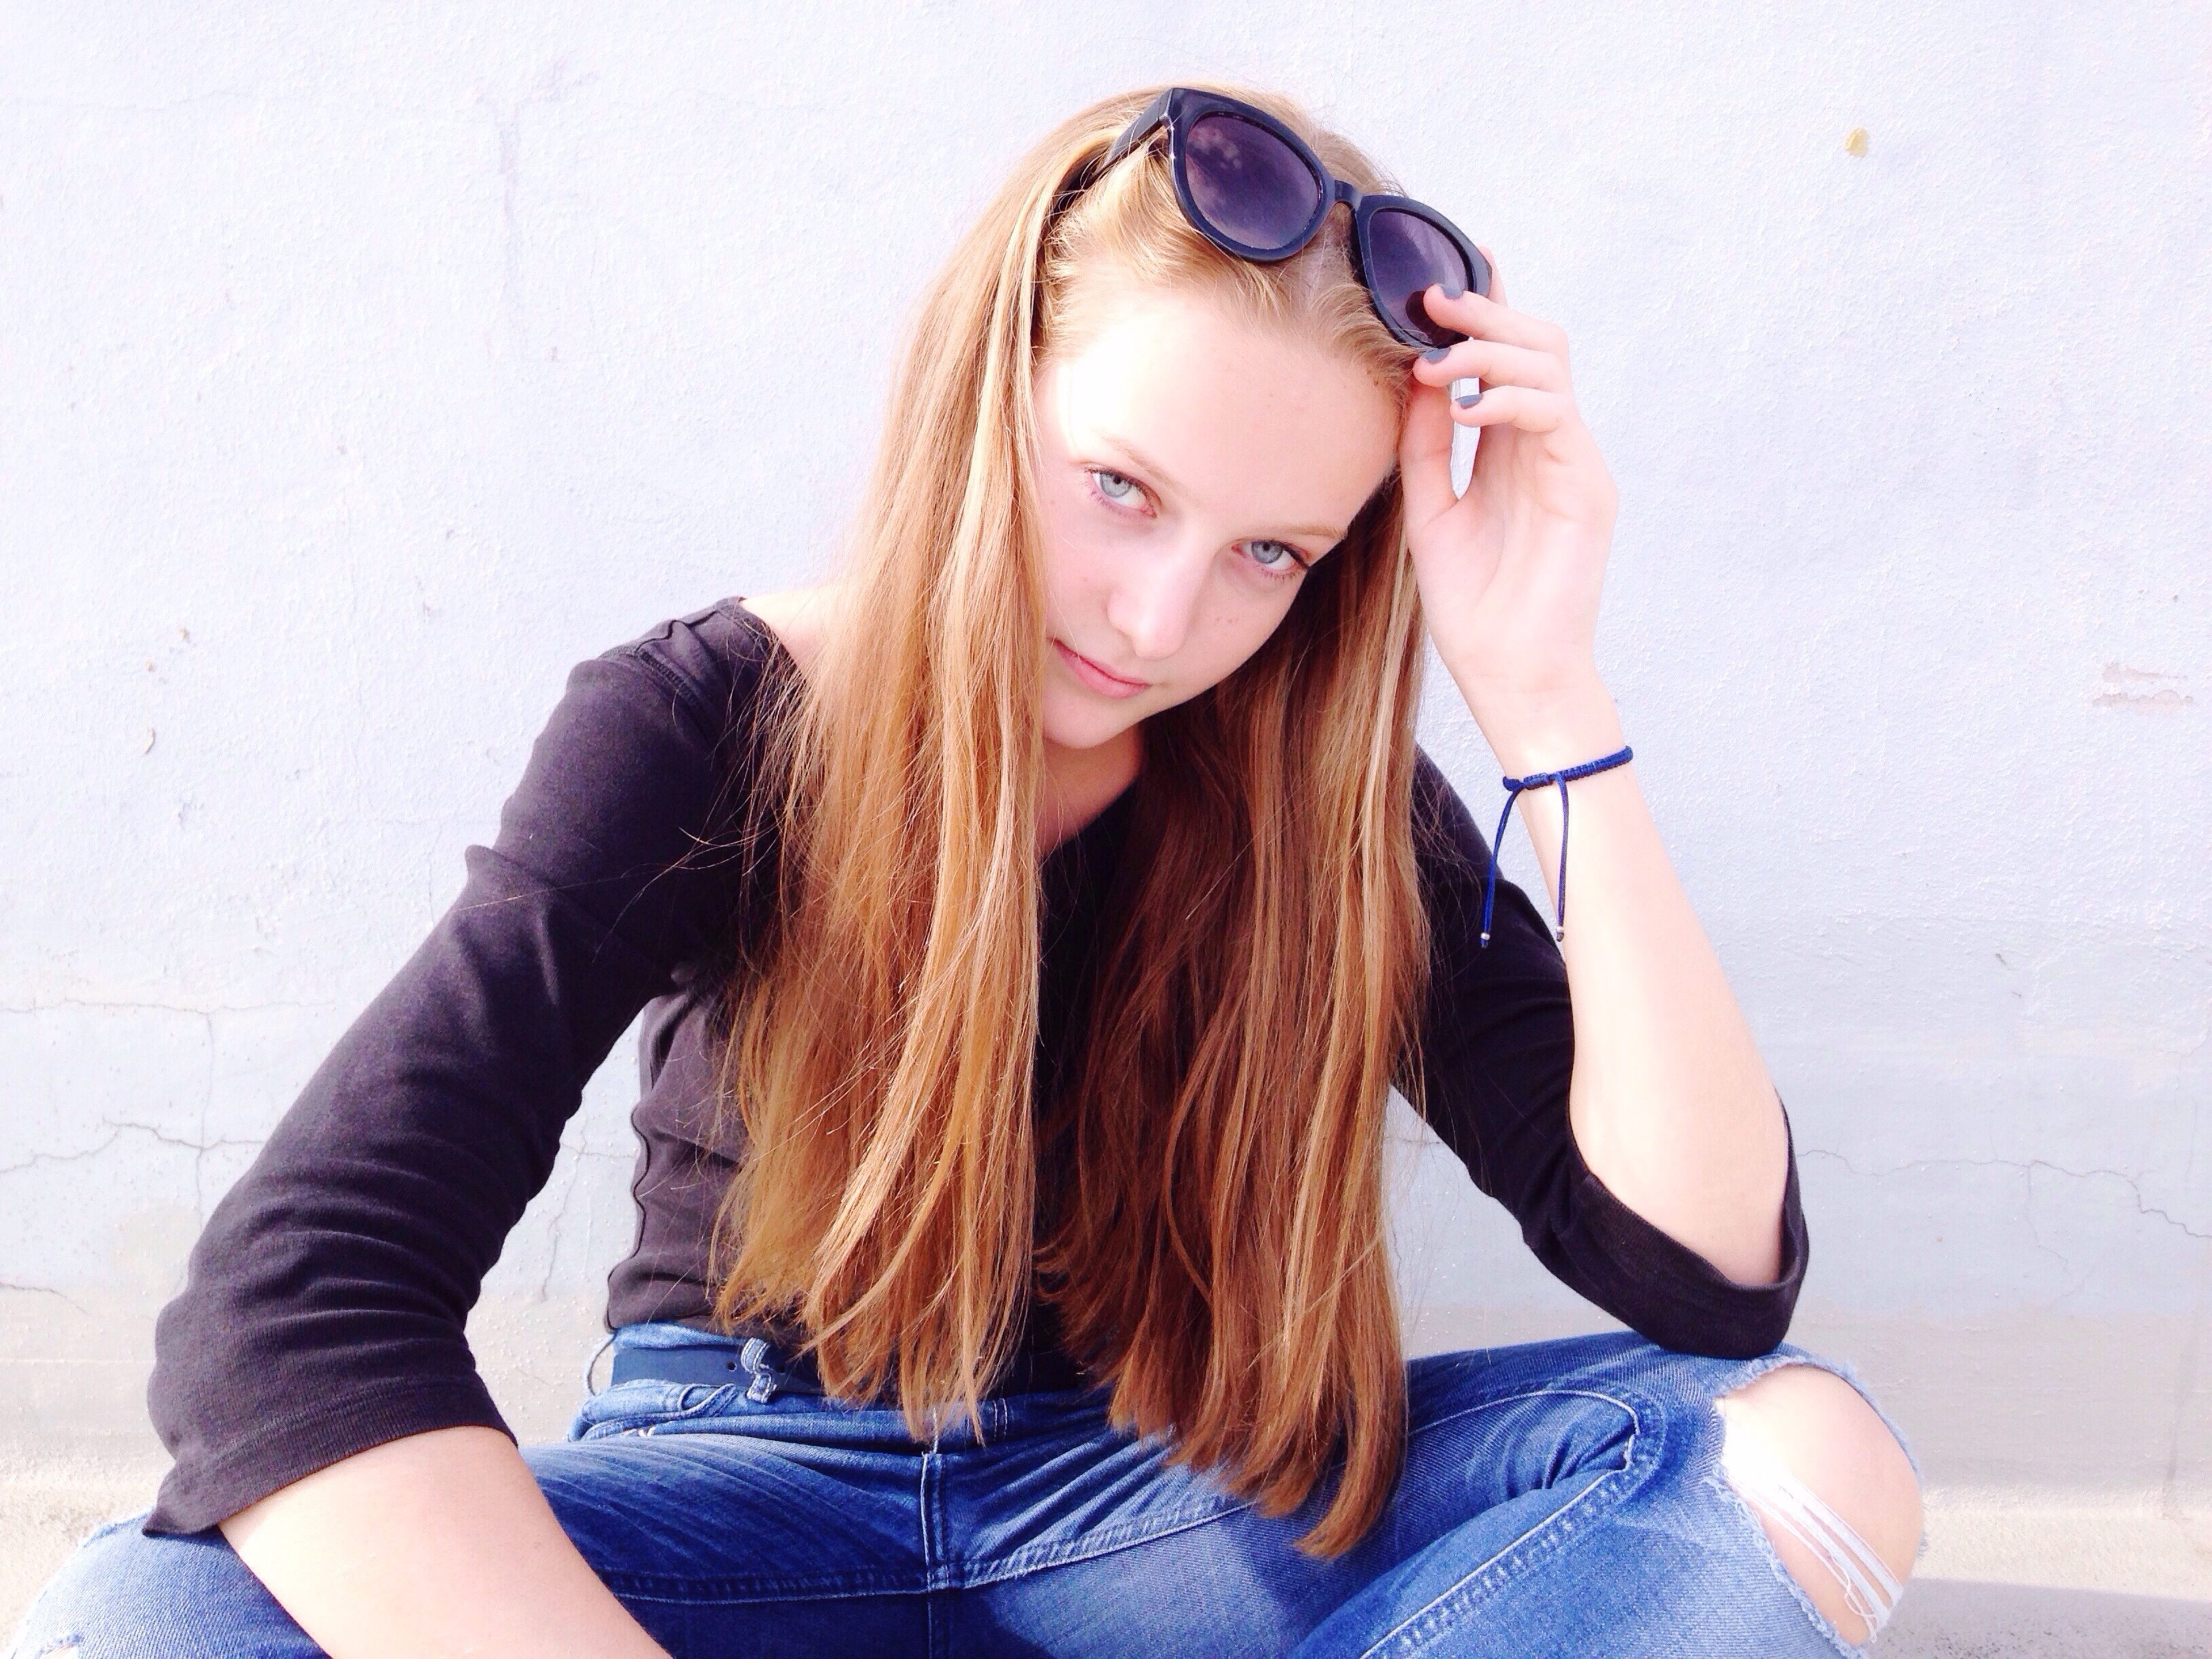 long hair, young adult, young women, leisure activity, lifestyles, front view, casual clothing, beauty, person, carefree, one young woman only, enjoyment, beautiful people, looking at camera, straight hair